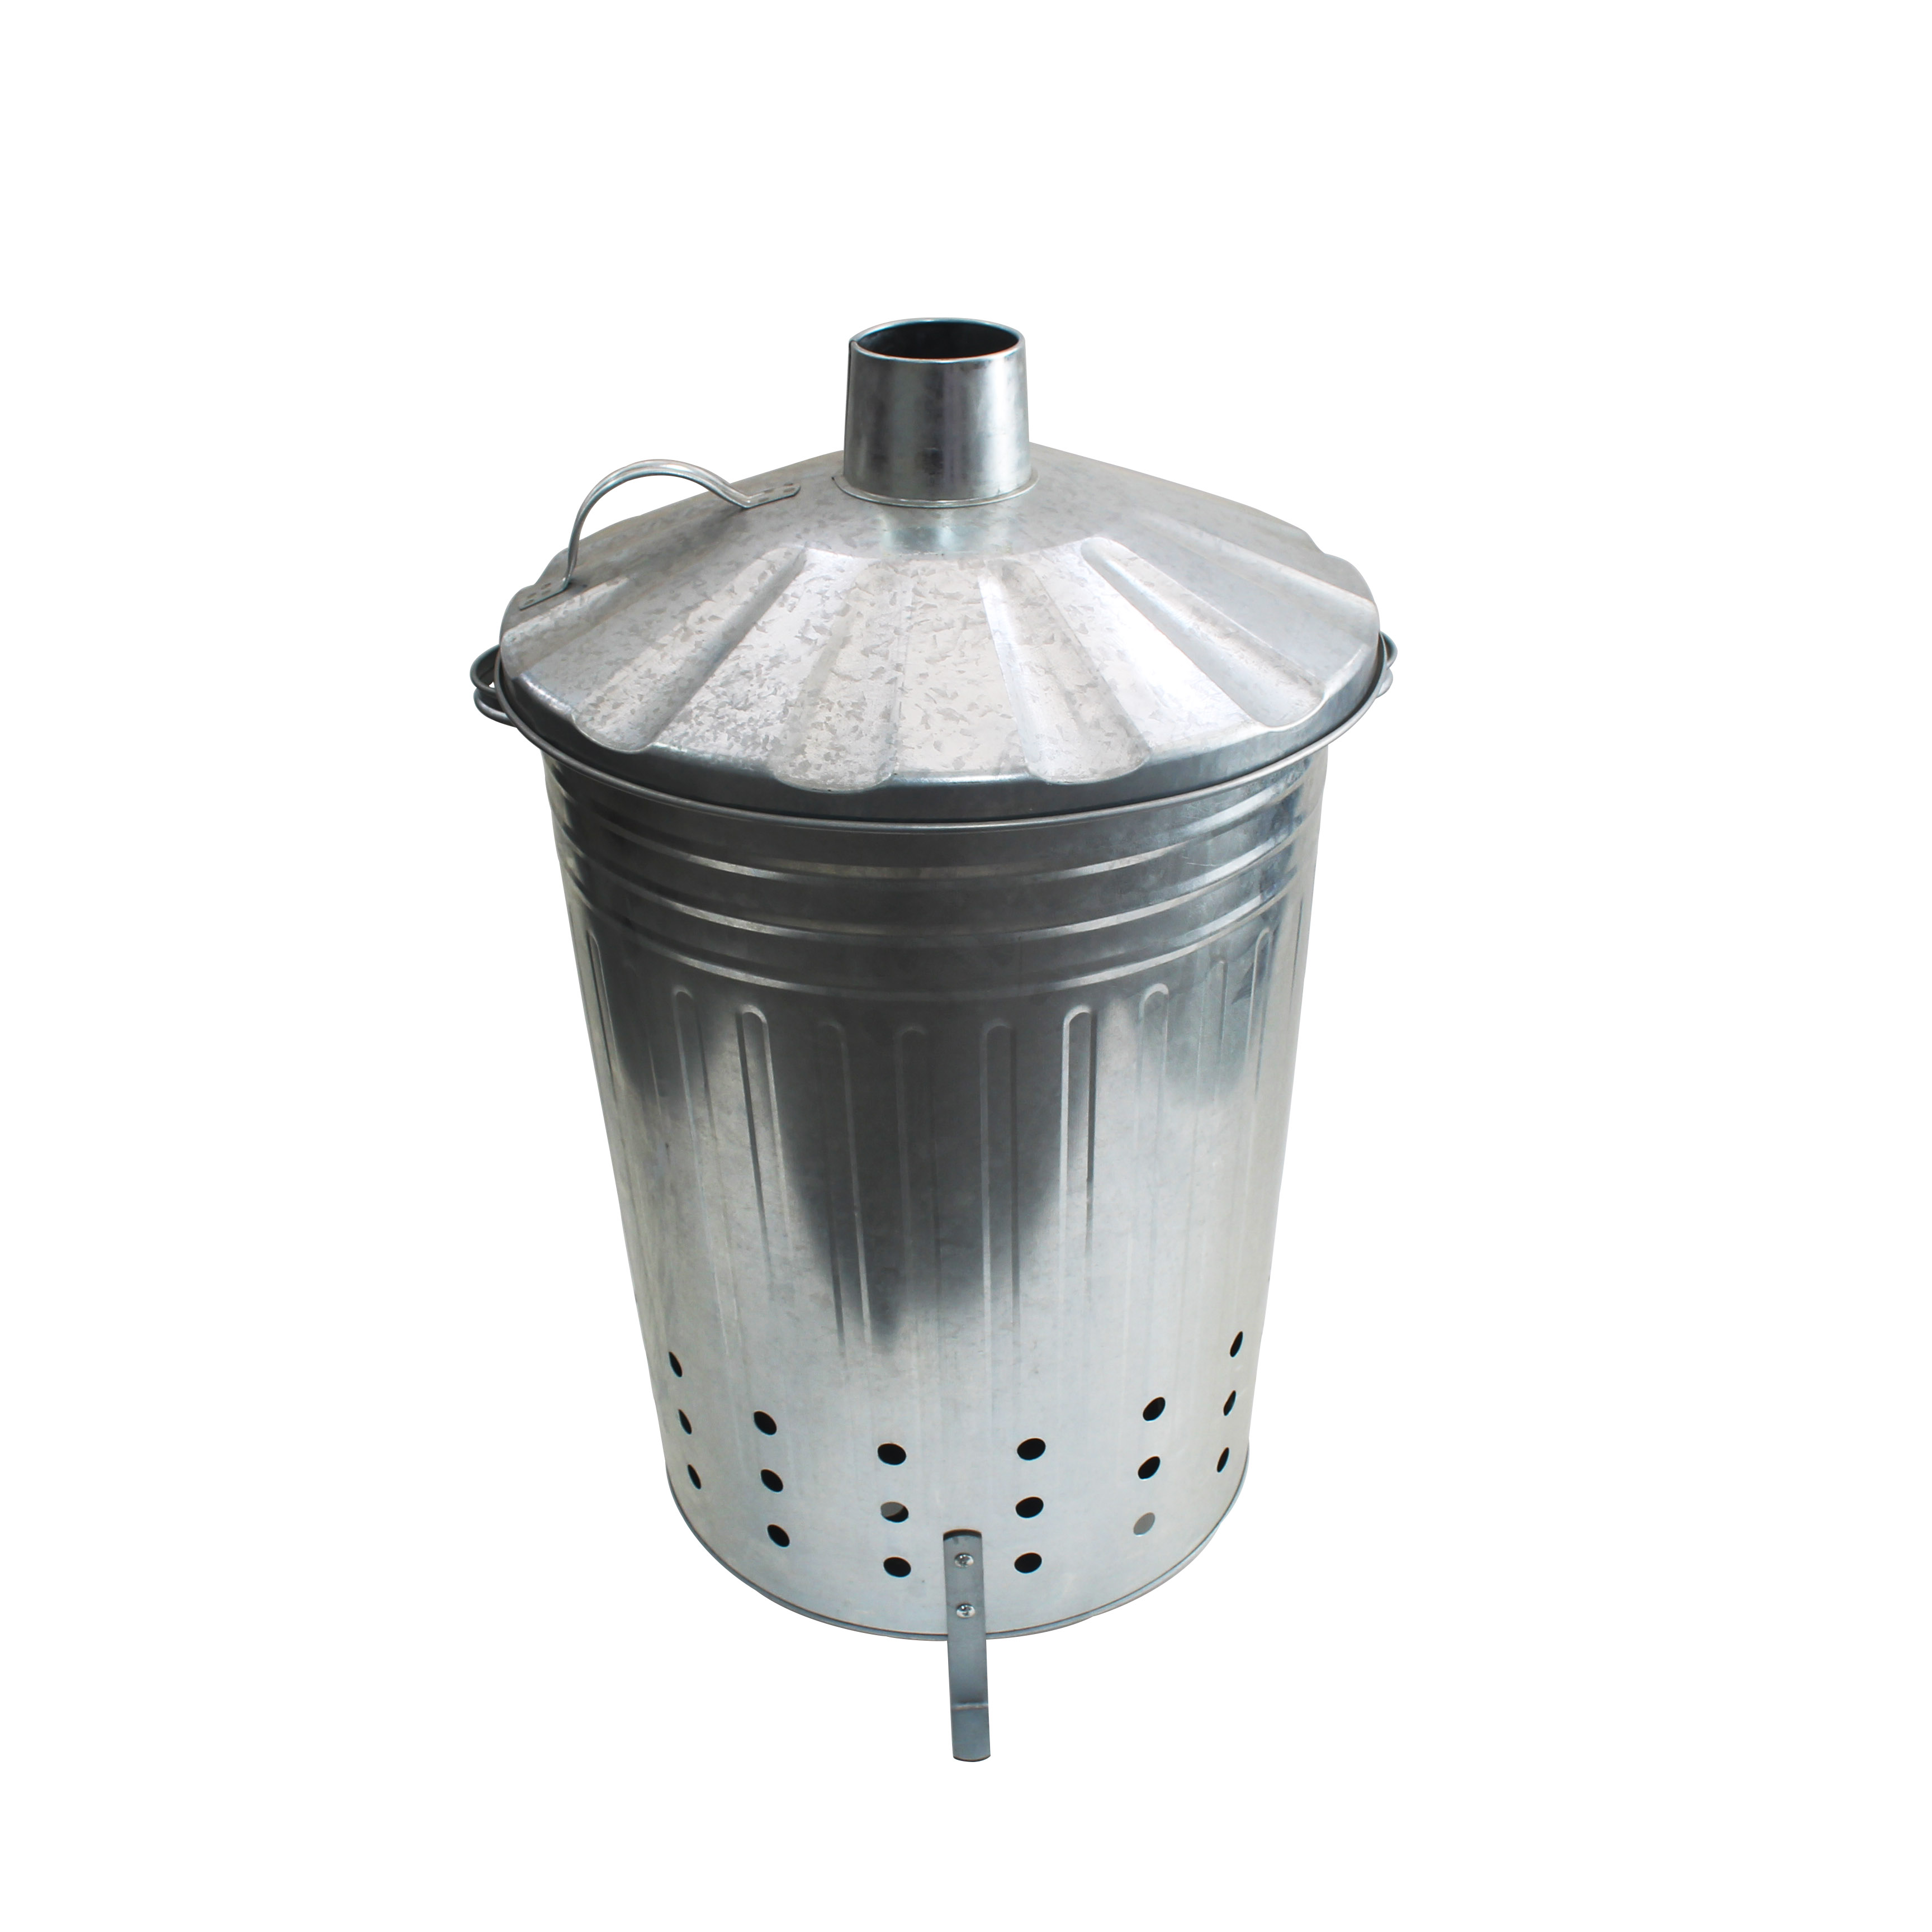 75L Galvanized metal home garden incinerator